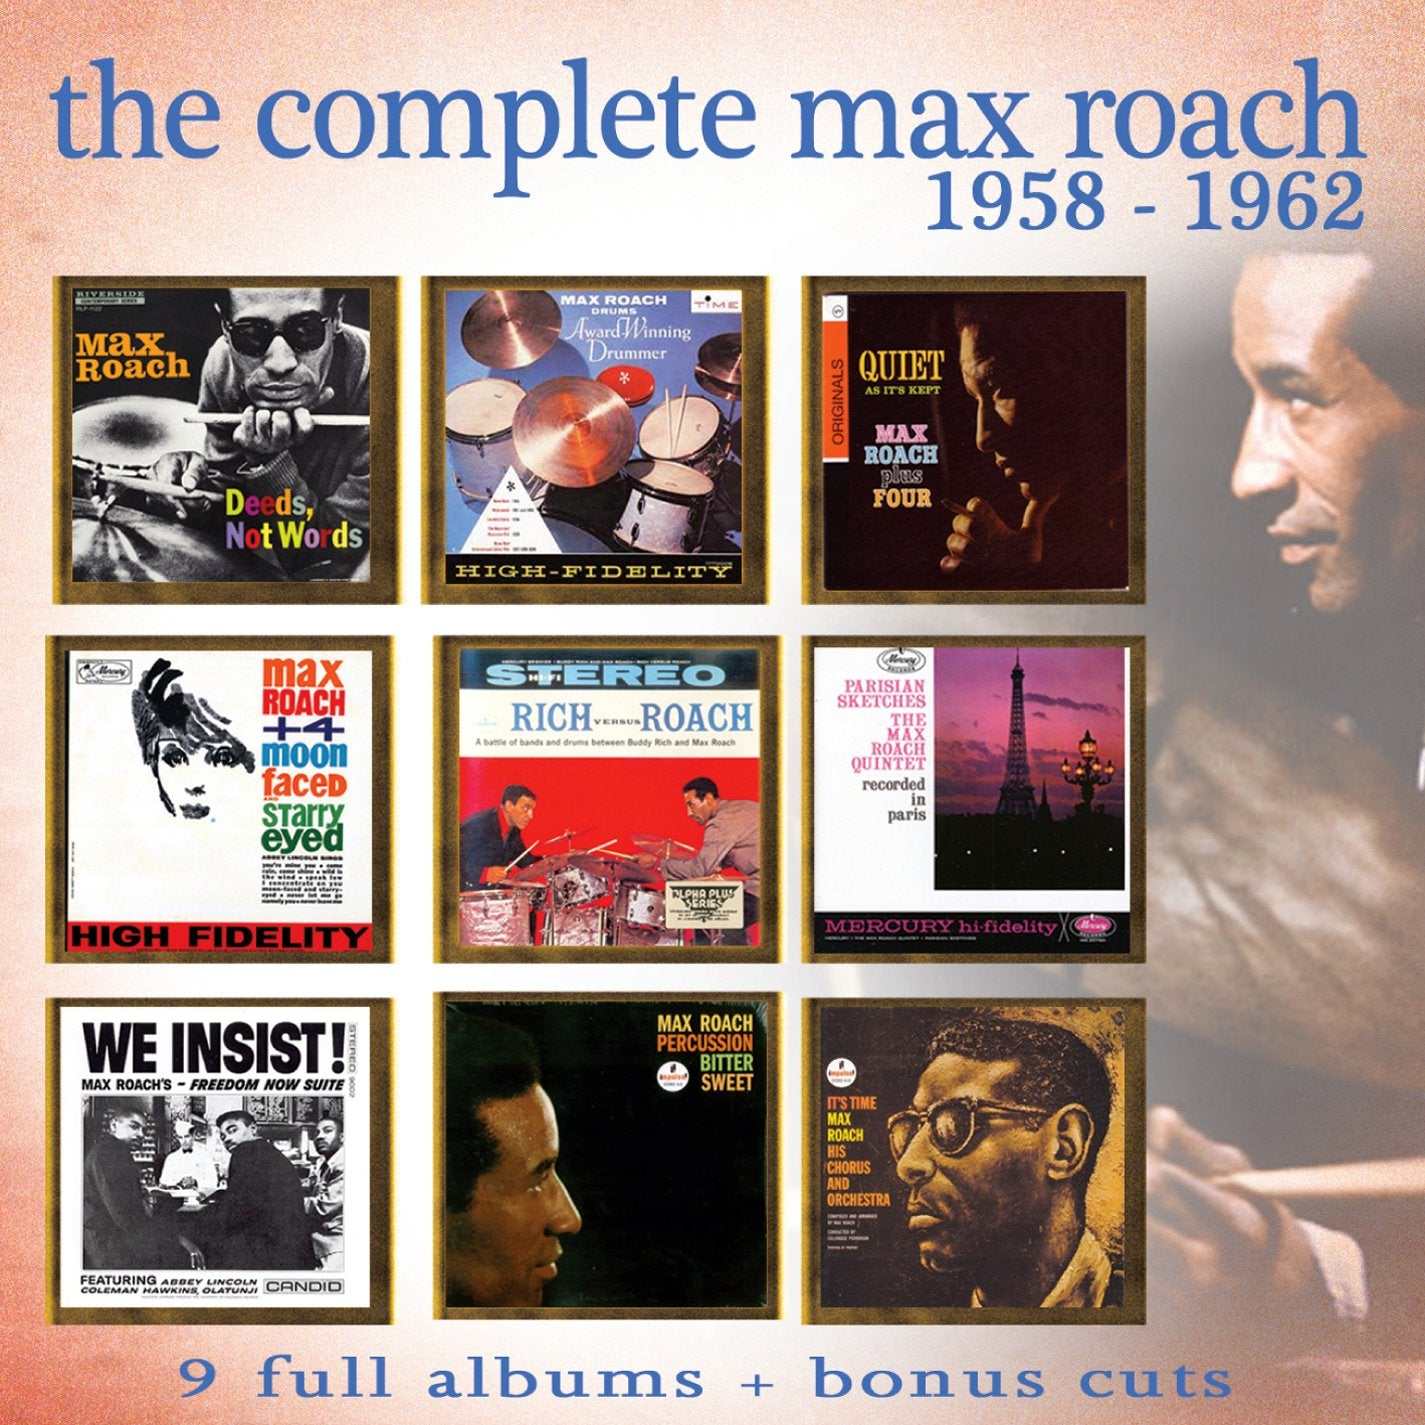 Roach, Max/Complete Max Roach 1958-1962 (4 Disc) [CD]